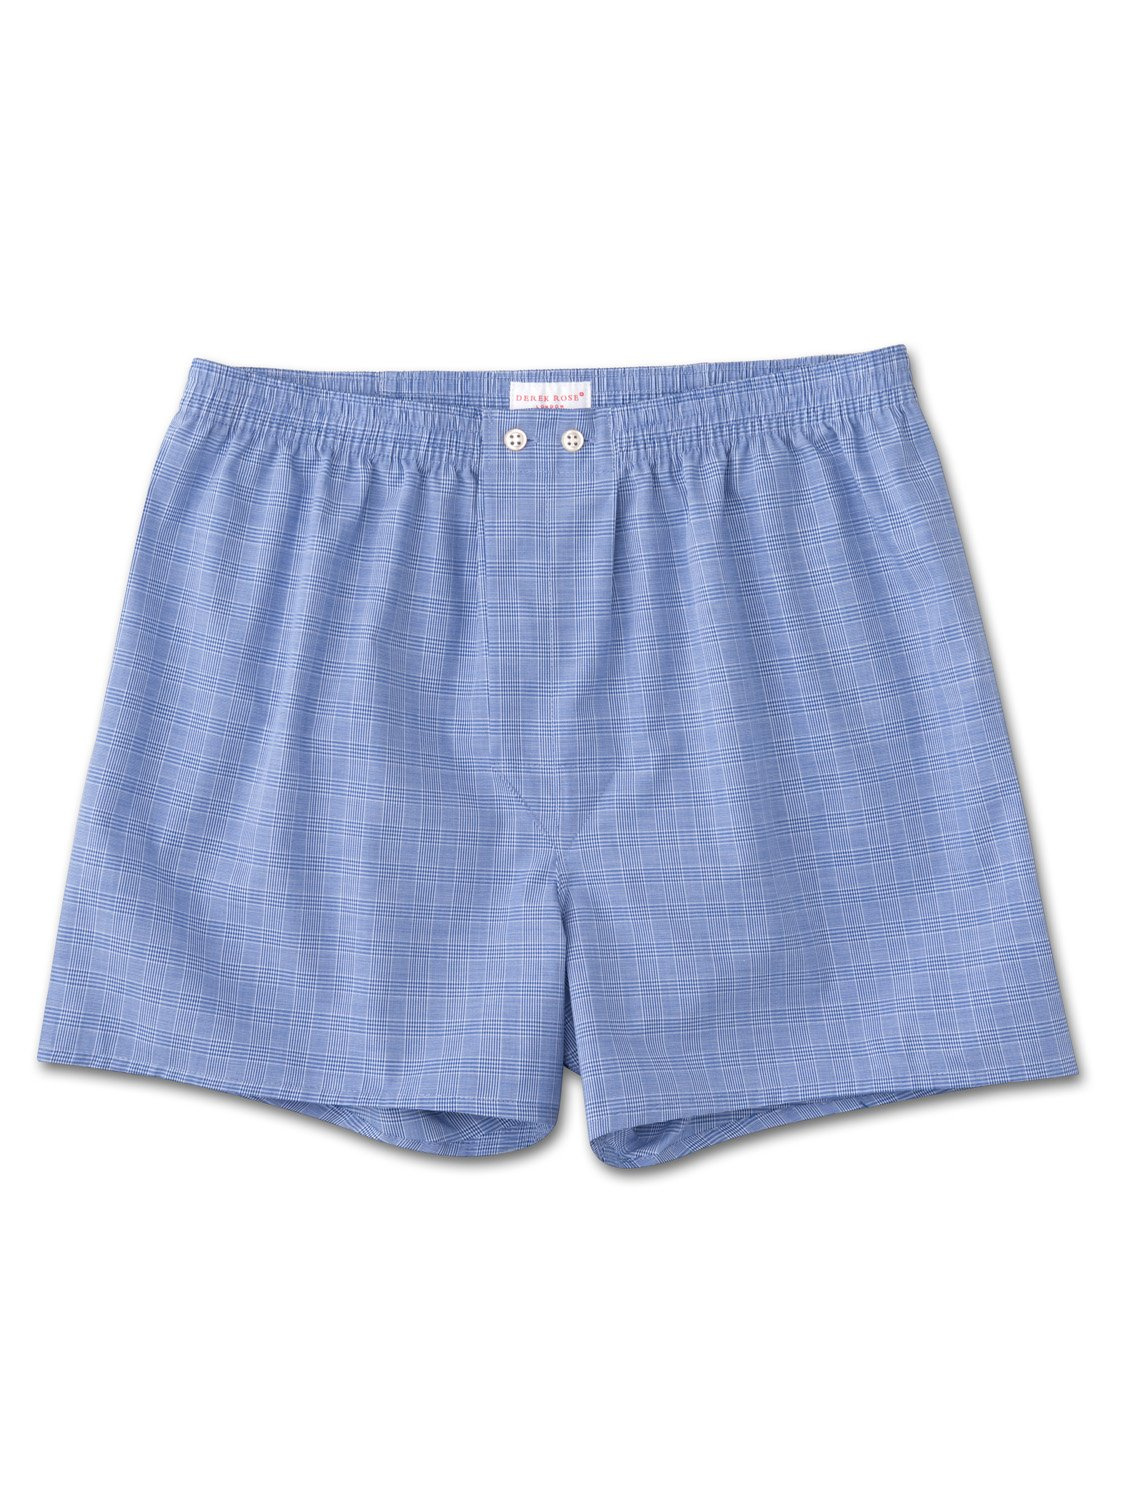 Men's Classic Fit Boxer Shorts Felsted 3 Pure Cotton Blue